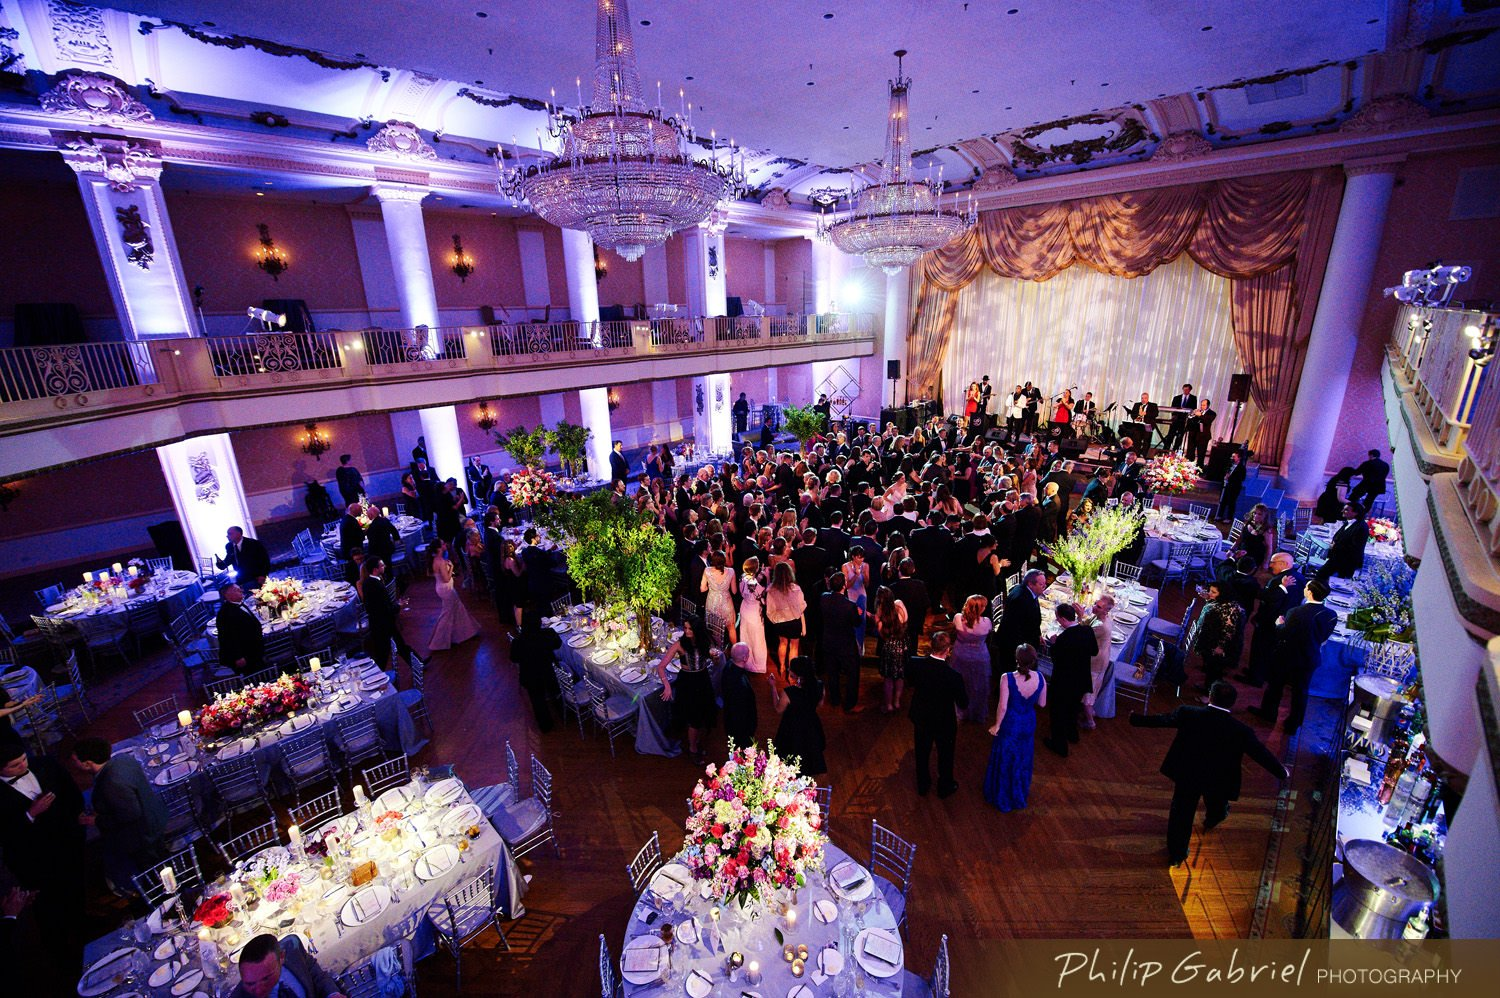 Tags Cto Hyatt At The Bellevue Lamsback Fl Decorators Philadelphia Wedding Spring Xix